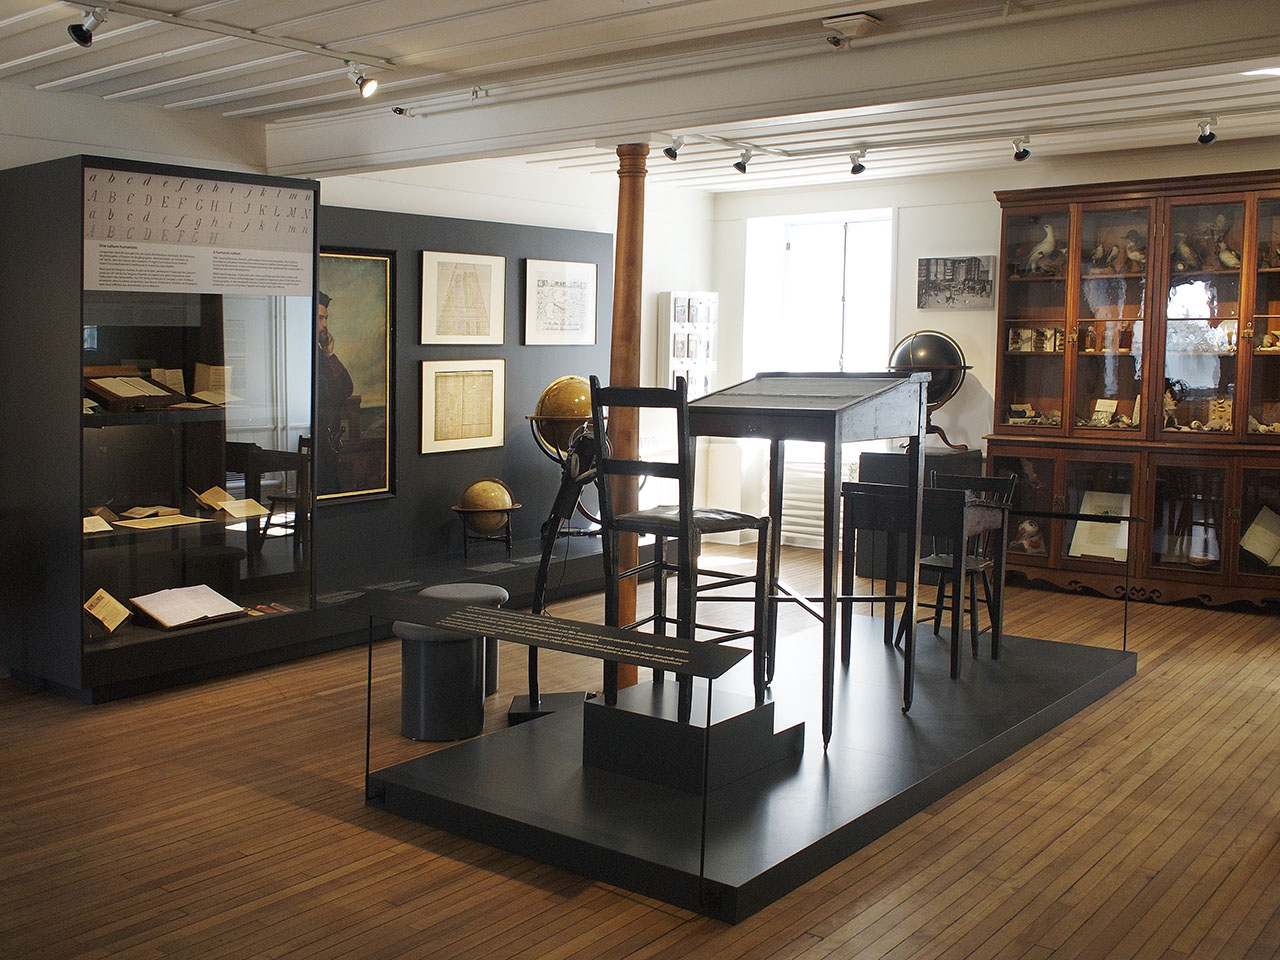 Museum gallery with desks